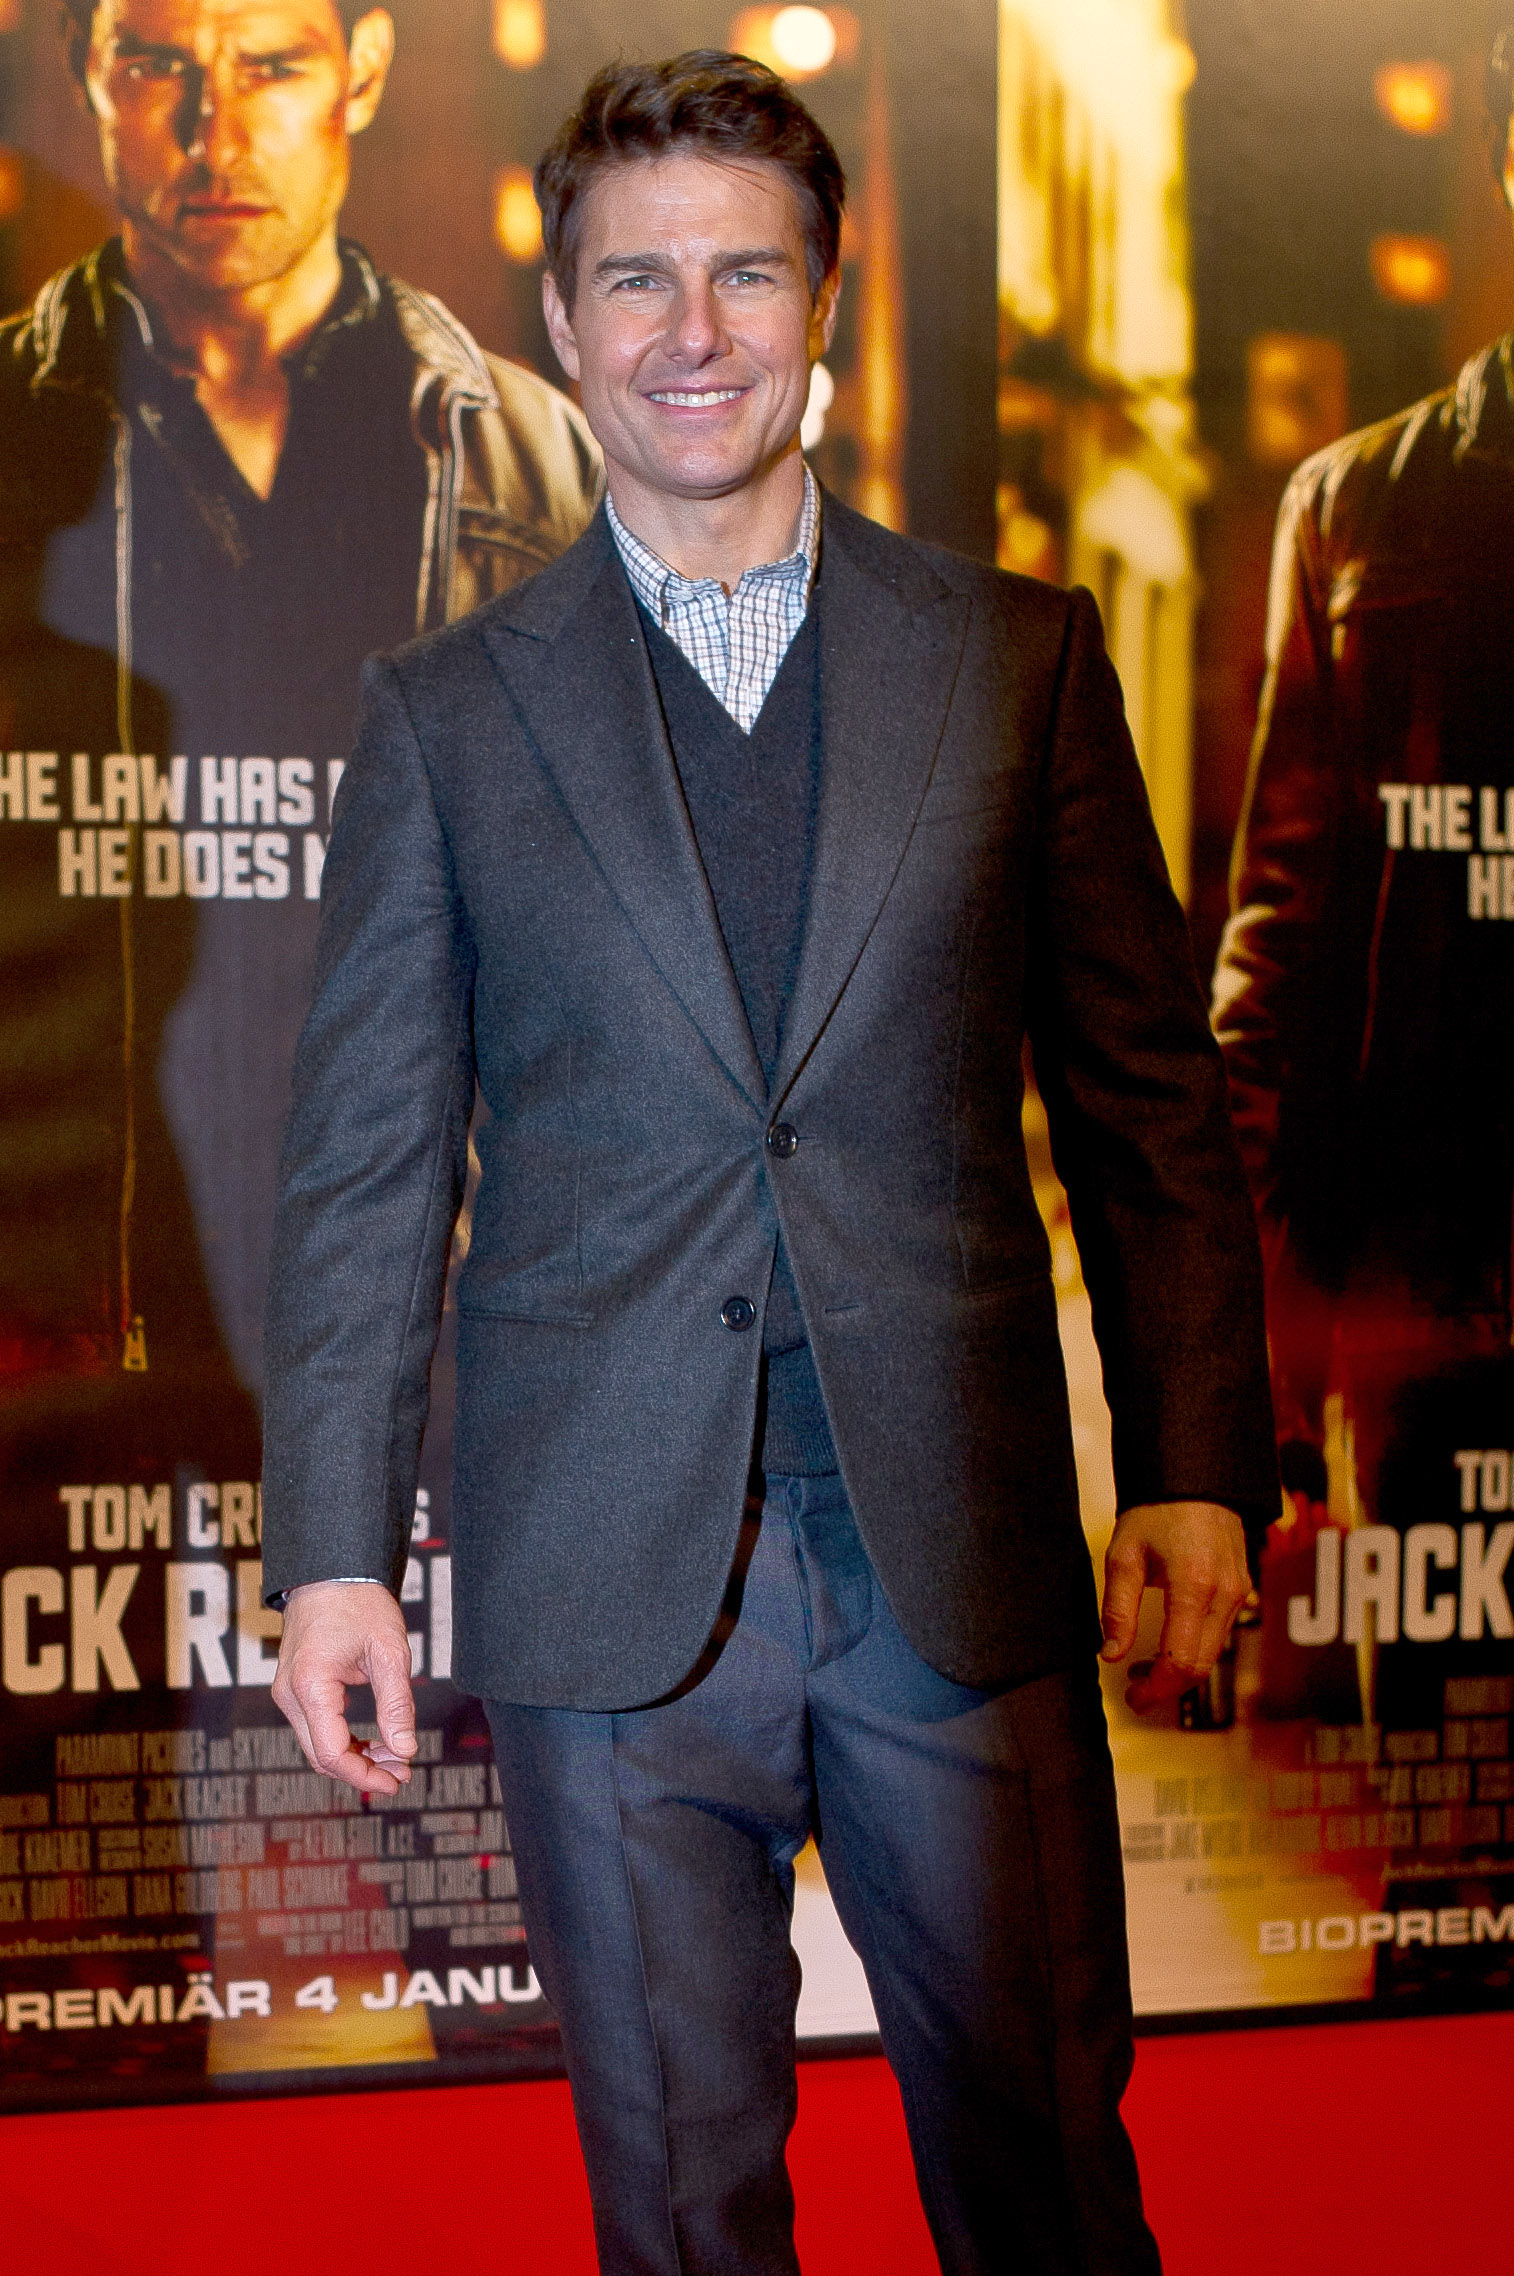 STOCKHOLM, SWEDEN - DECEMBER 11: Tom Cruise attends the Swedish Premiere of 'Jack Reacher' at Multiplex Sergel on December 11, 2012 in Stockholm, Sweden. (Photo by Ivan da Silva/Getty Images)